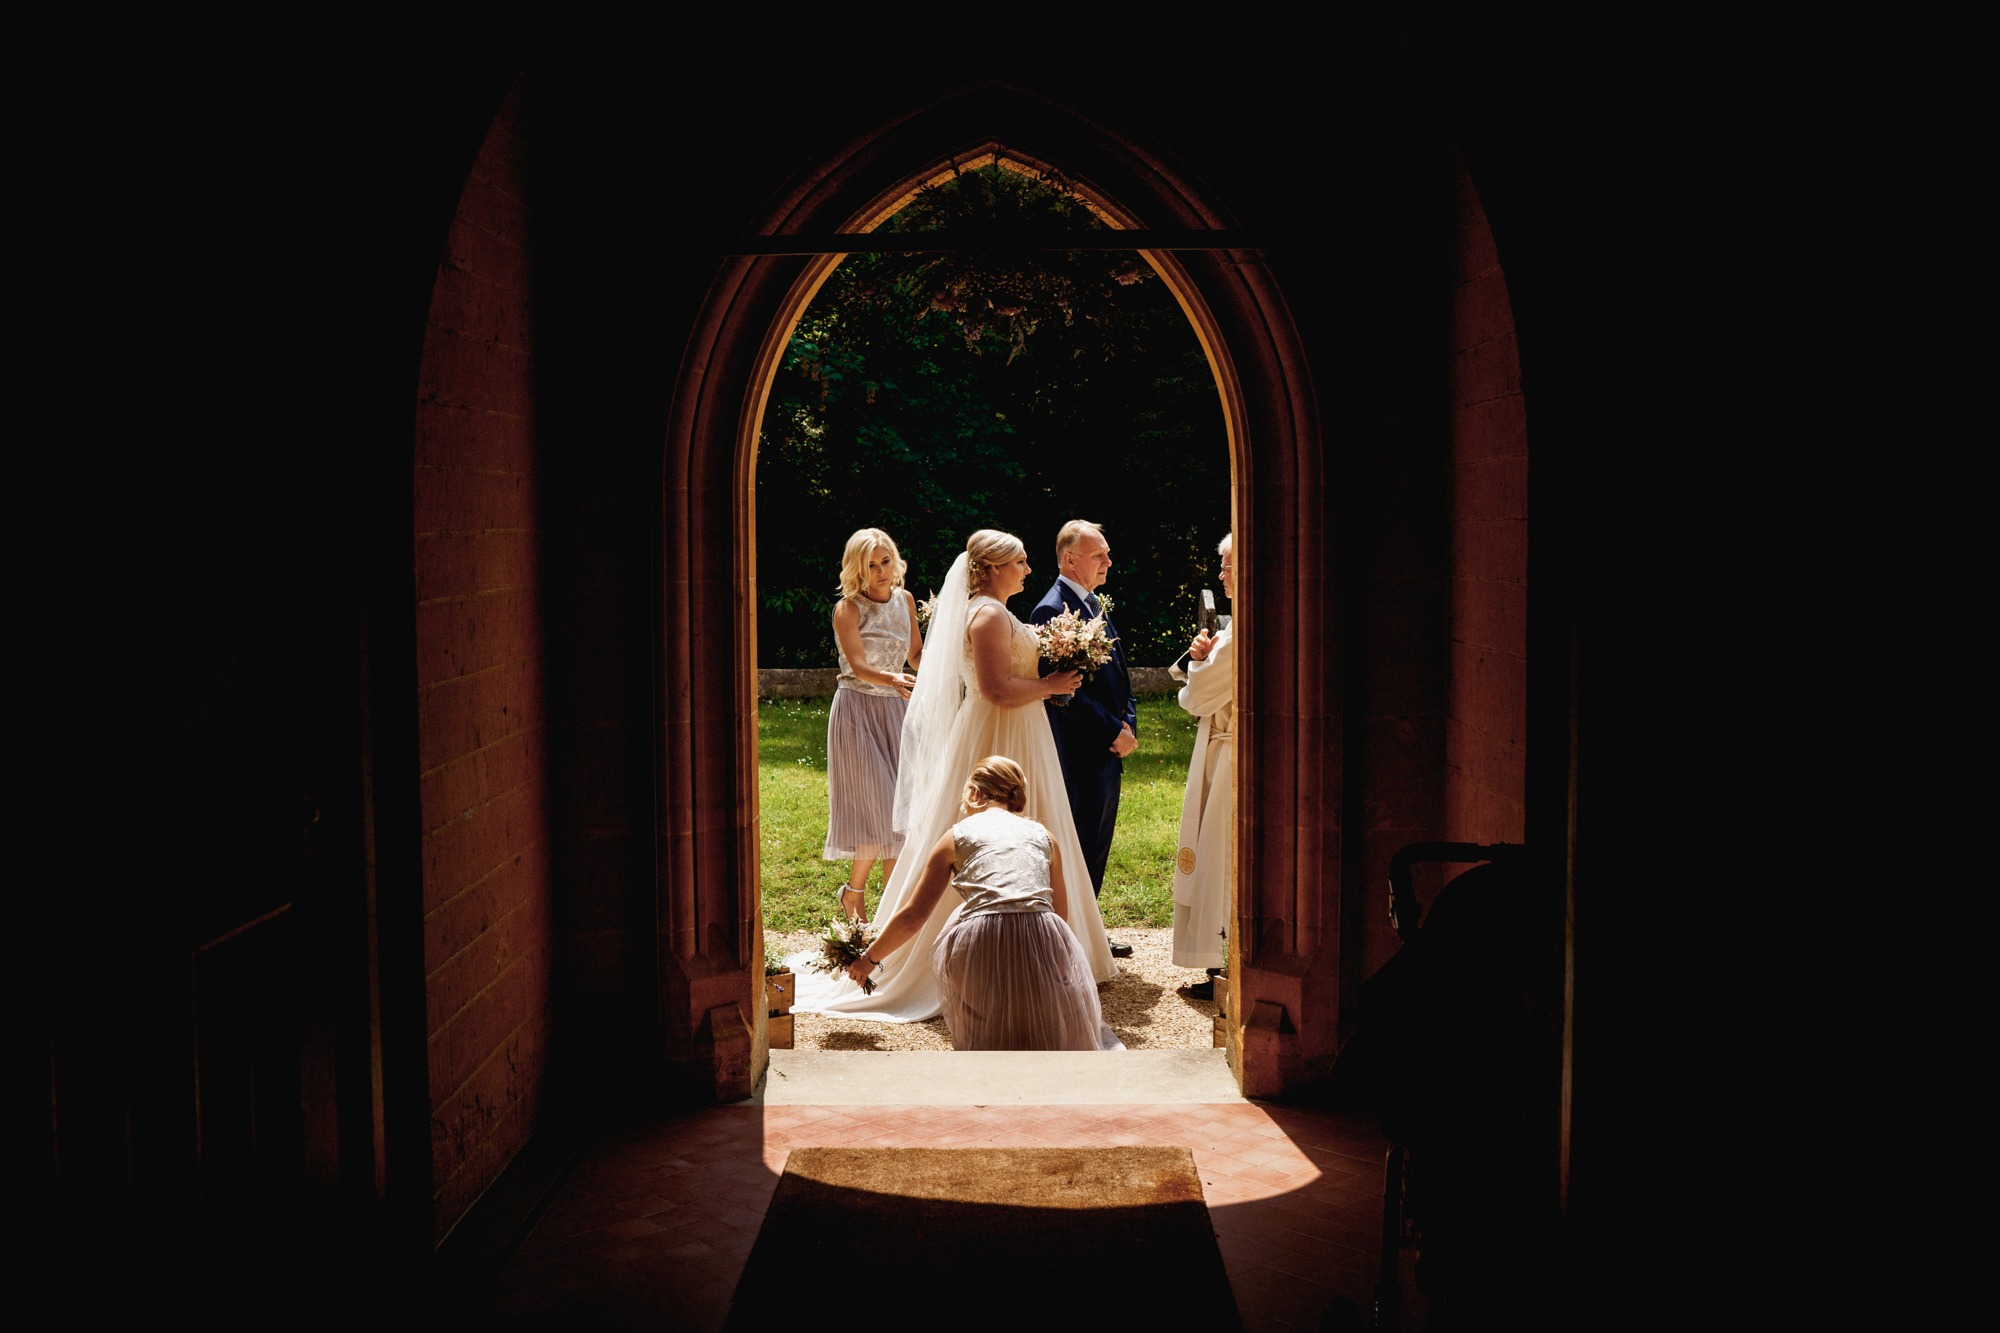 bride with her father and bridesmaids through church door before wedding ceremony